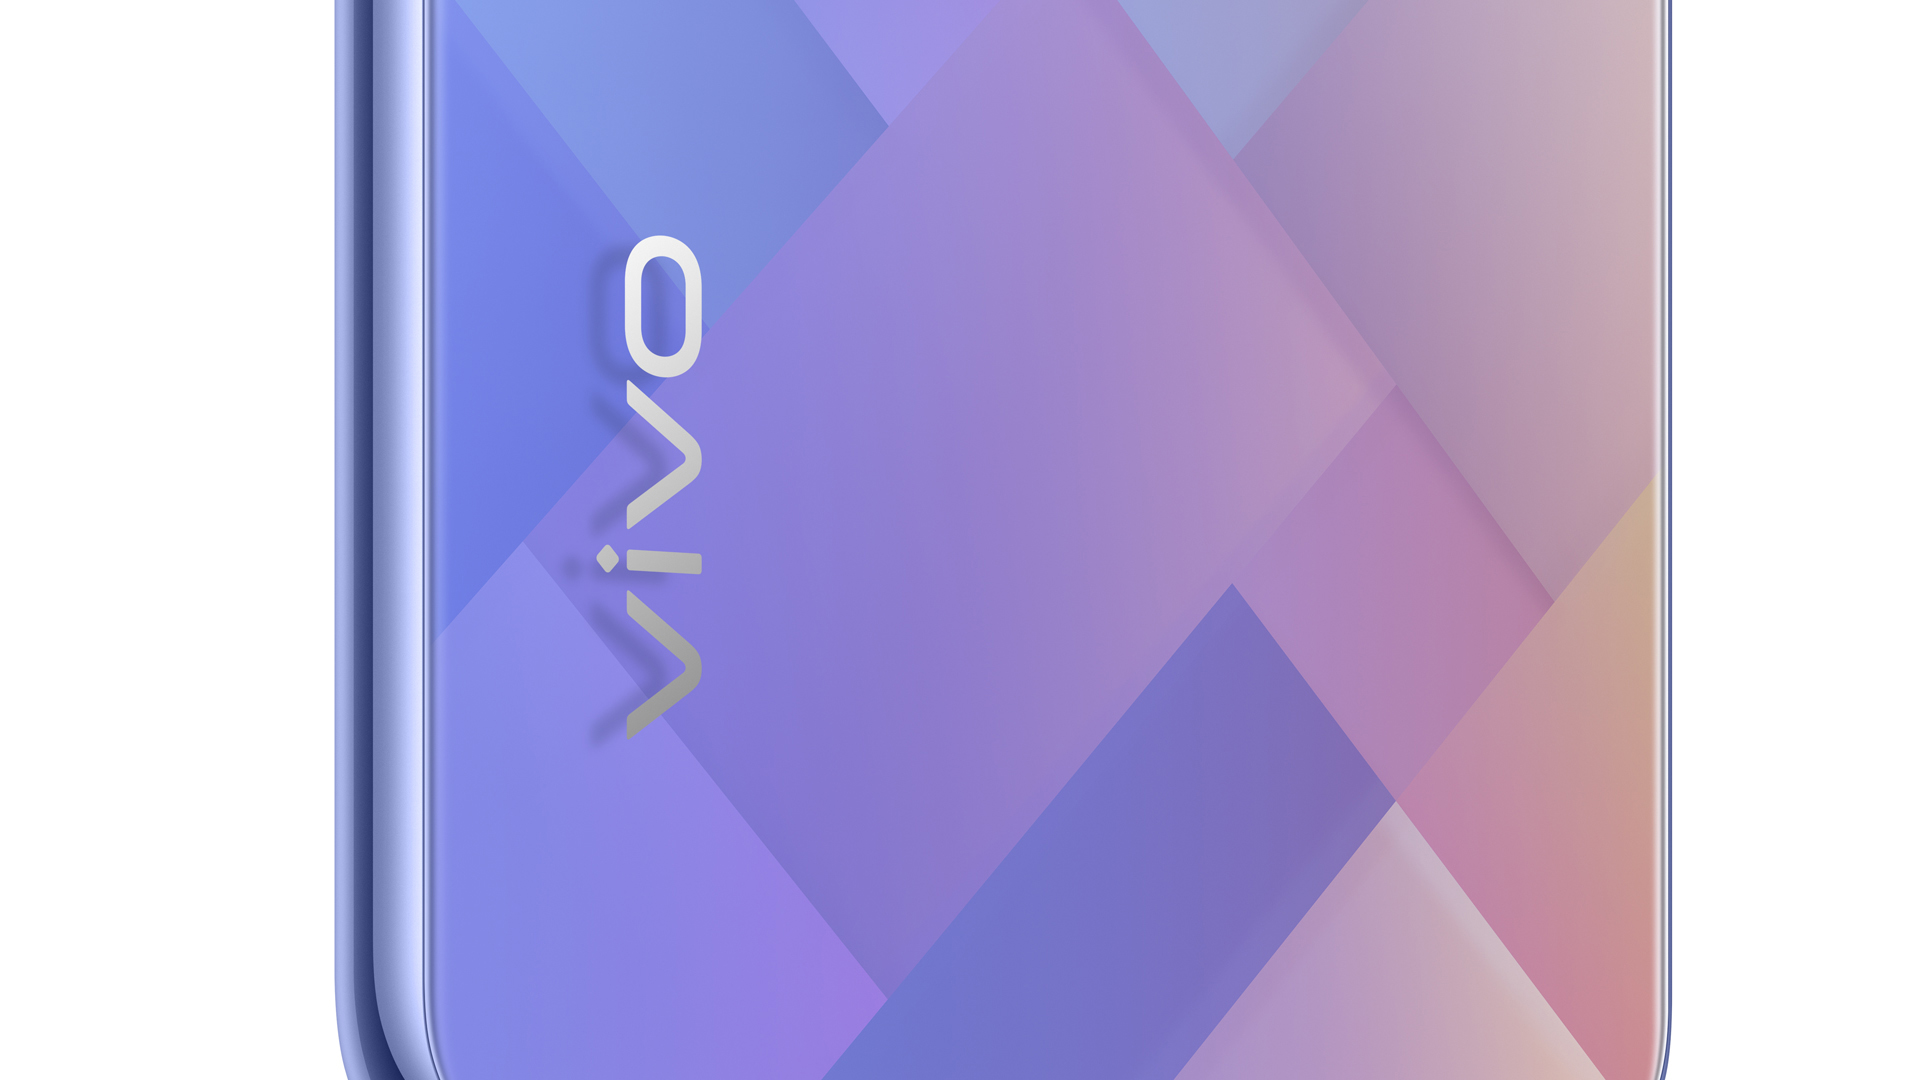 vivo launches the all-new Y73